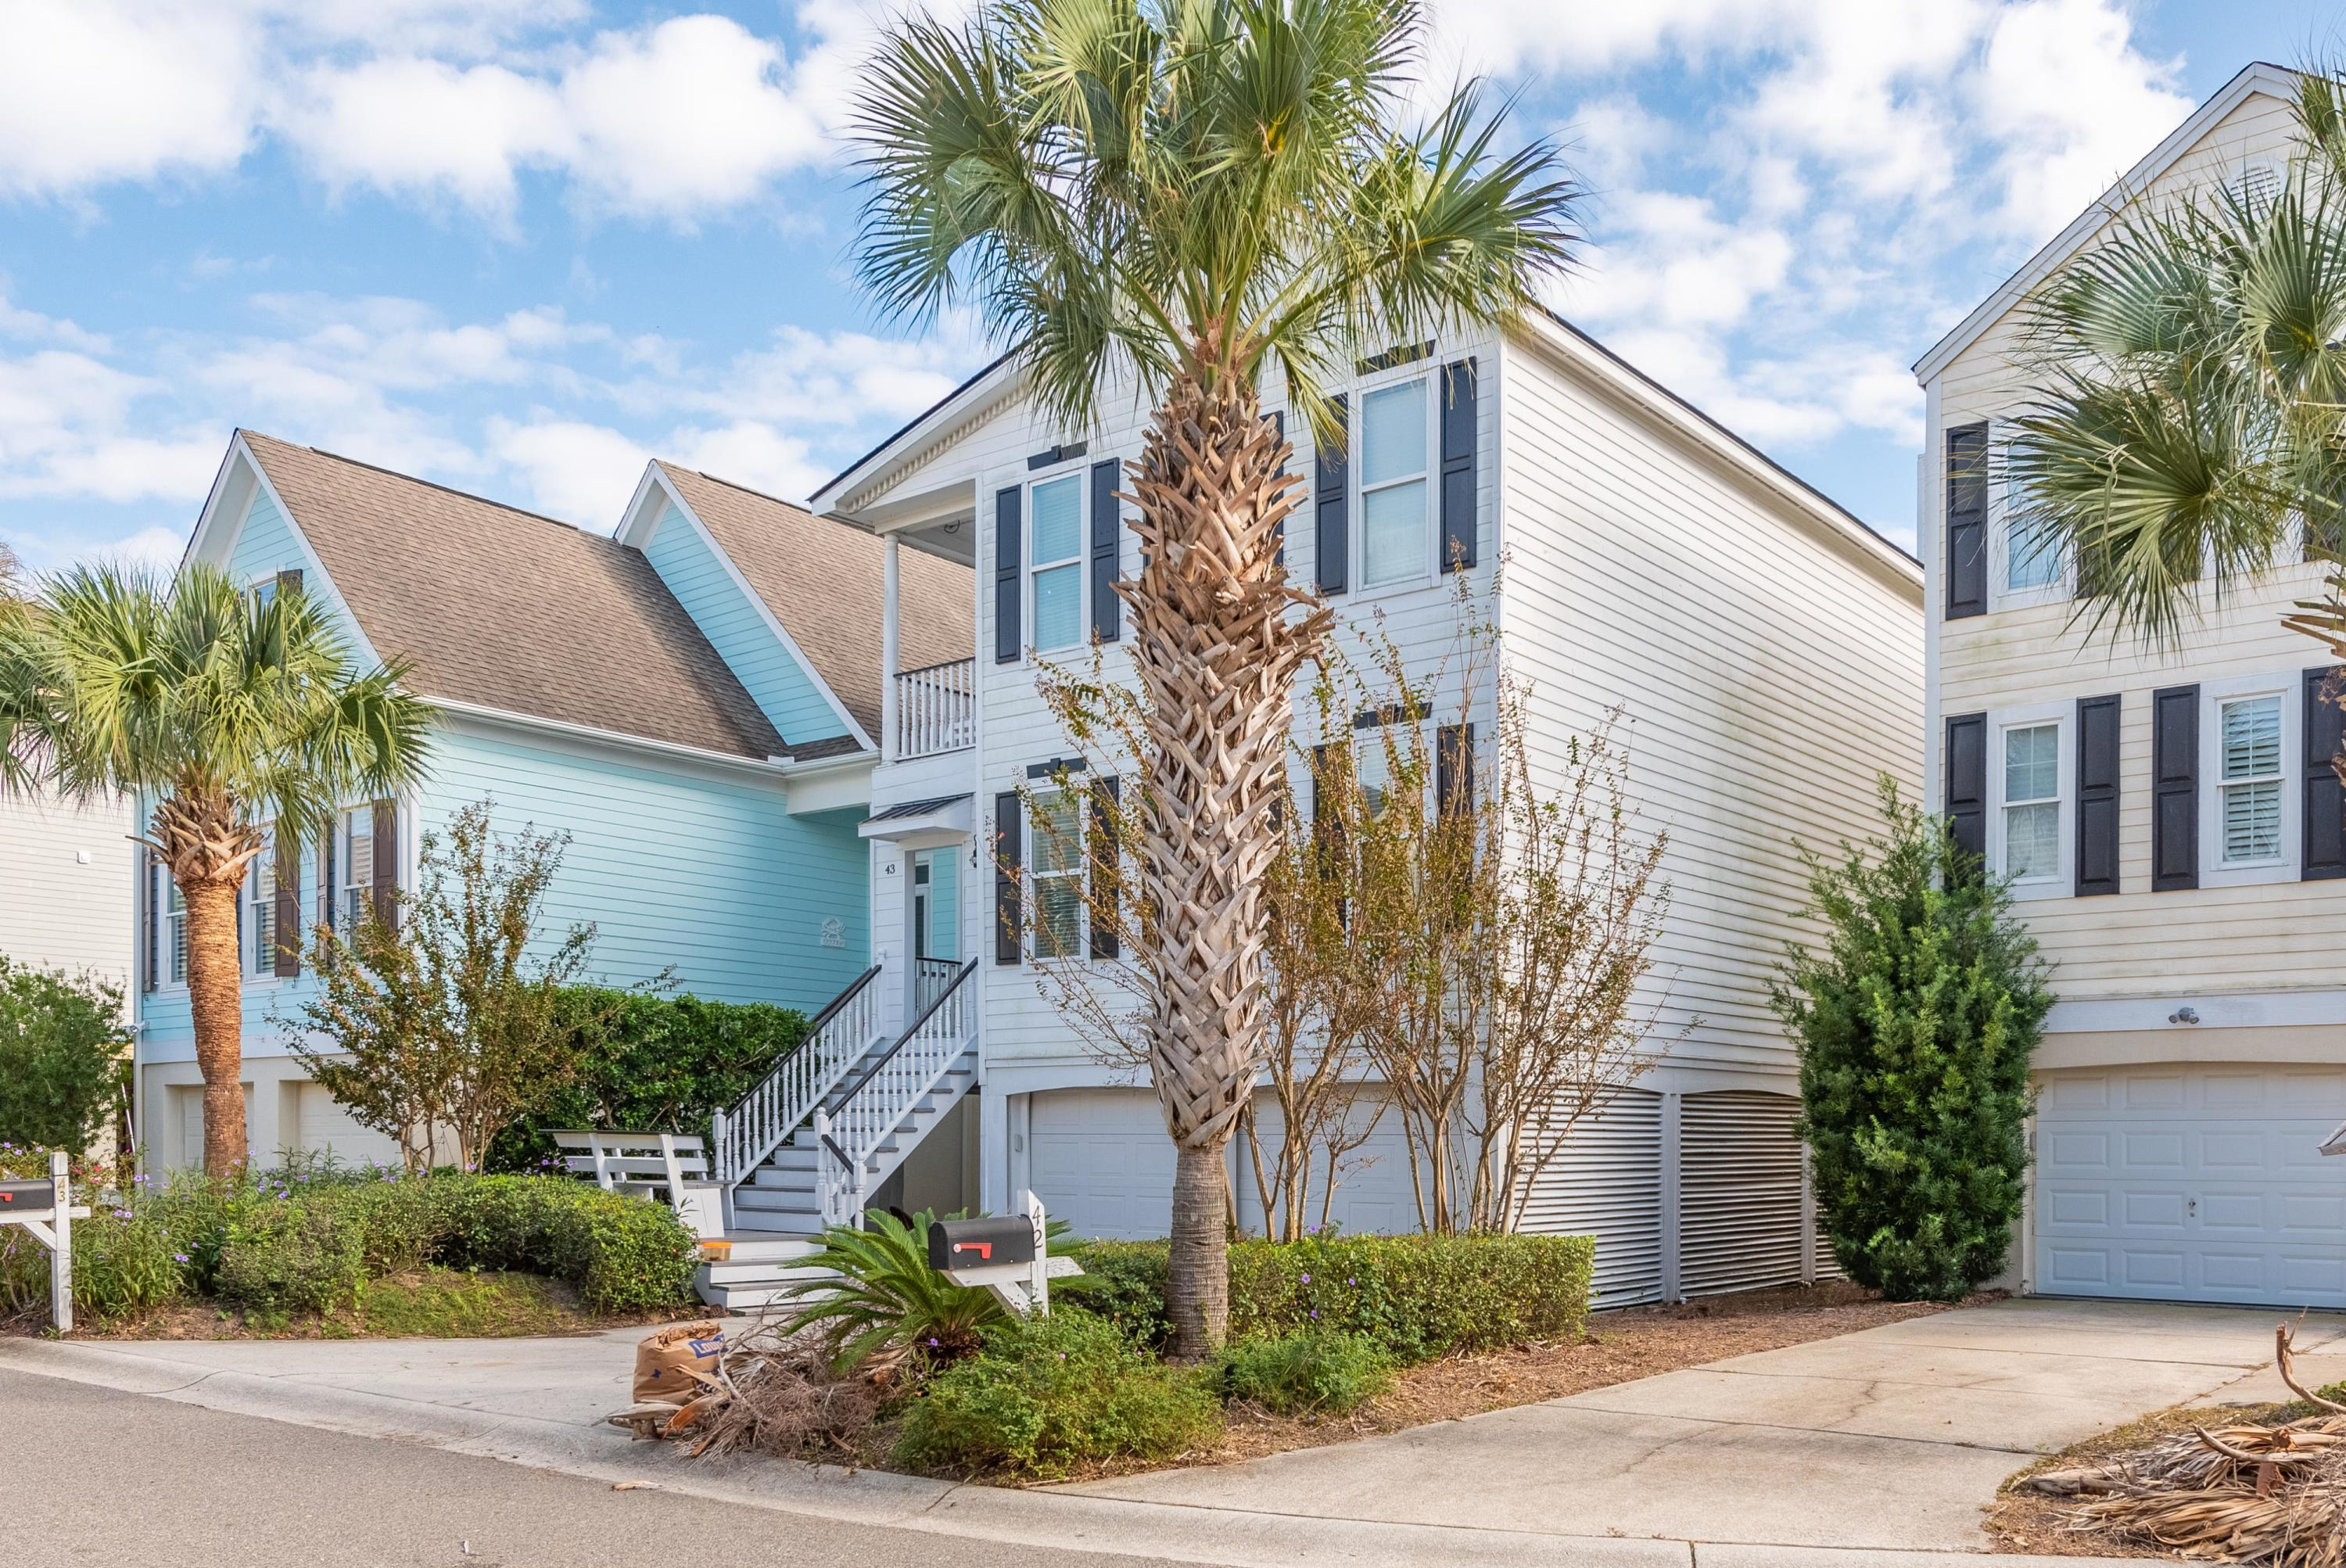 Wild Dunes Homes For Sale - 43 Morgans Cove, Isle of Palms, SC - 15